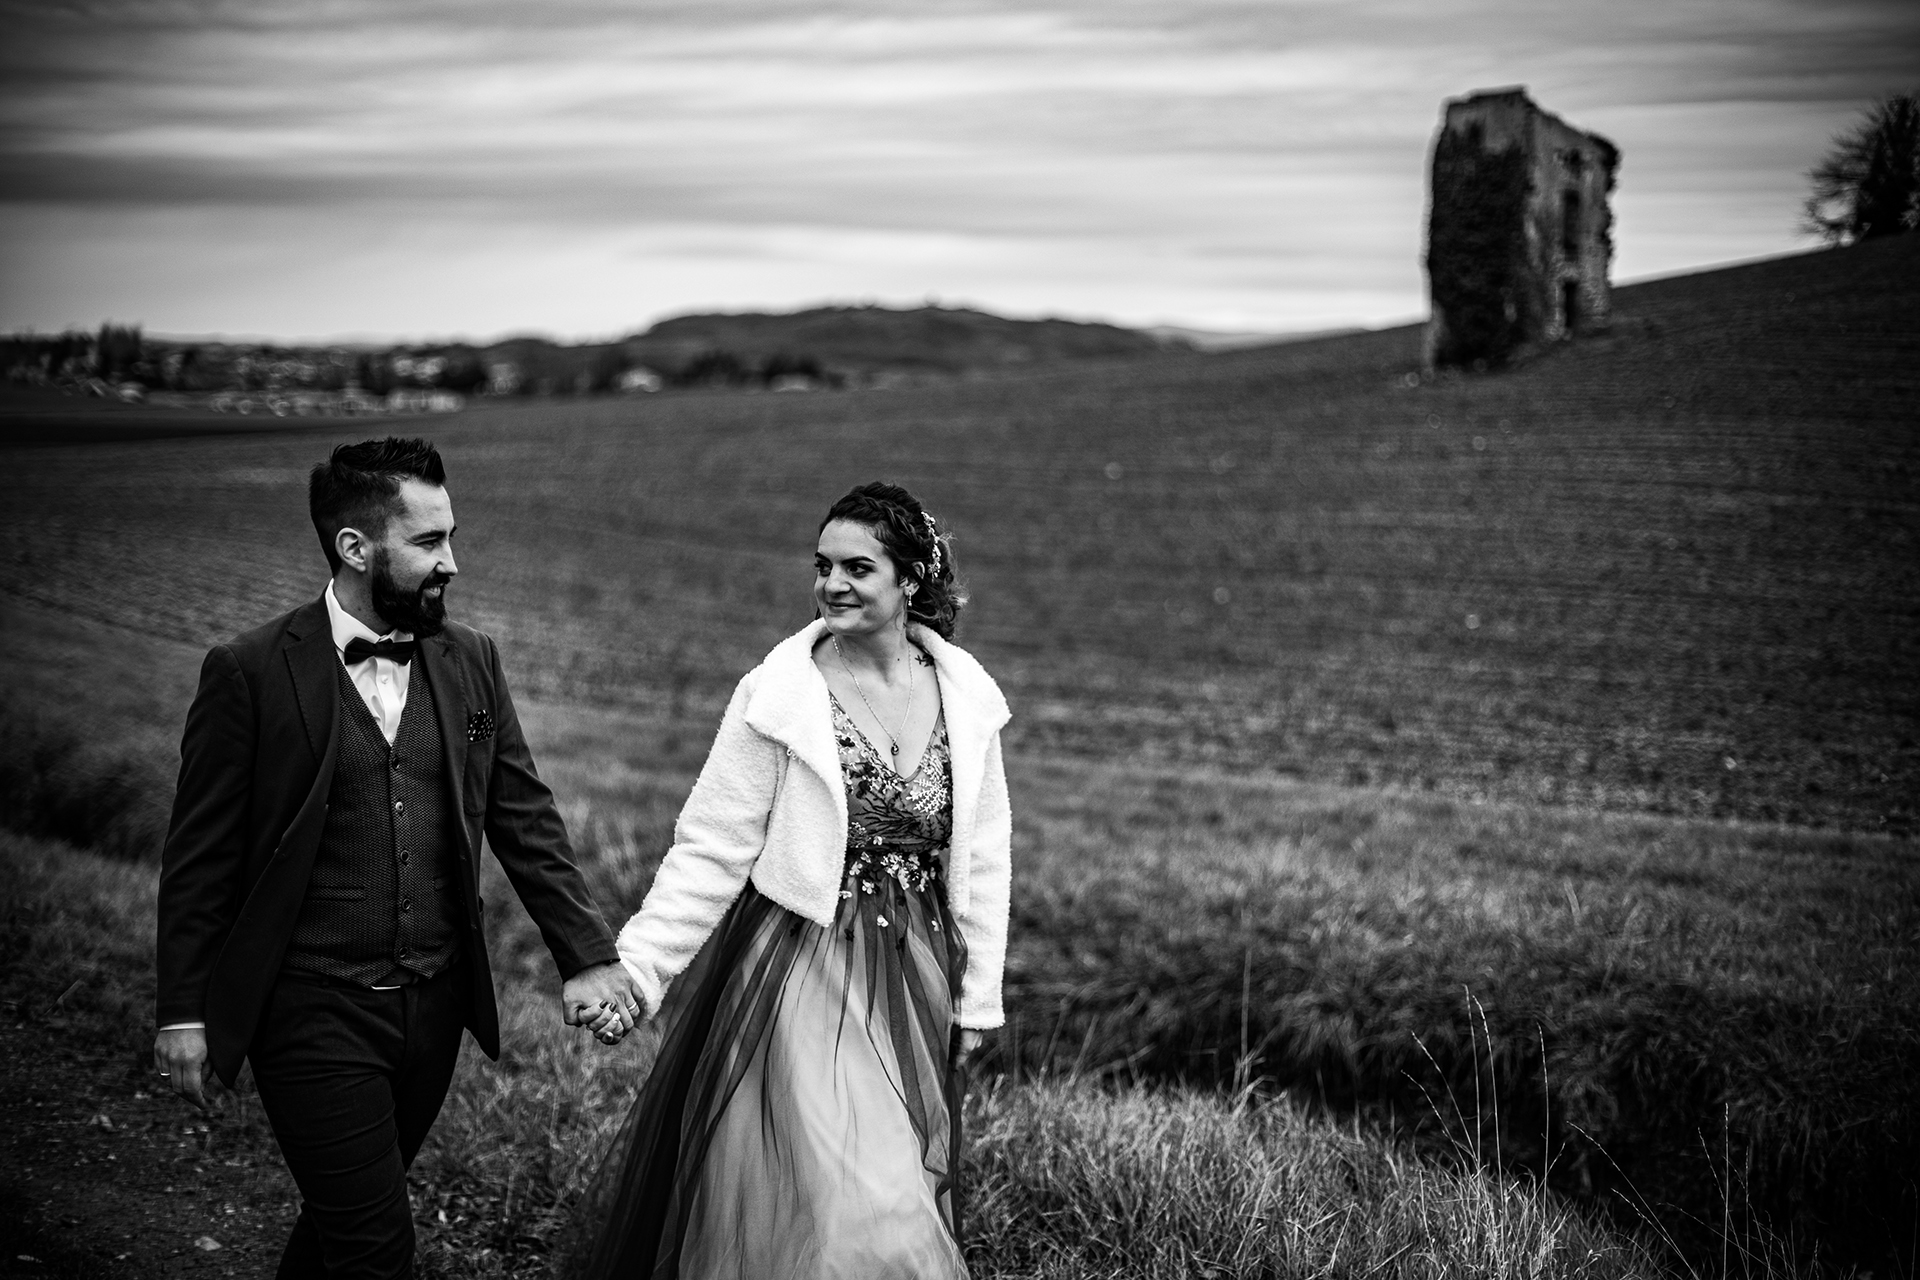 Puy de Dôme Wedding Portraits | The French countryside sets the stage for this romantic stroll